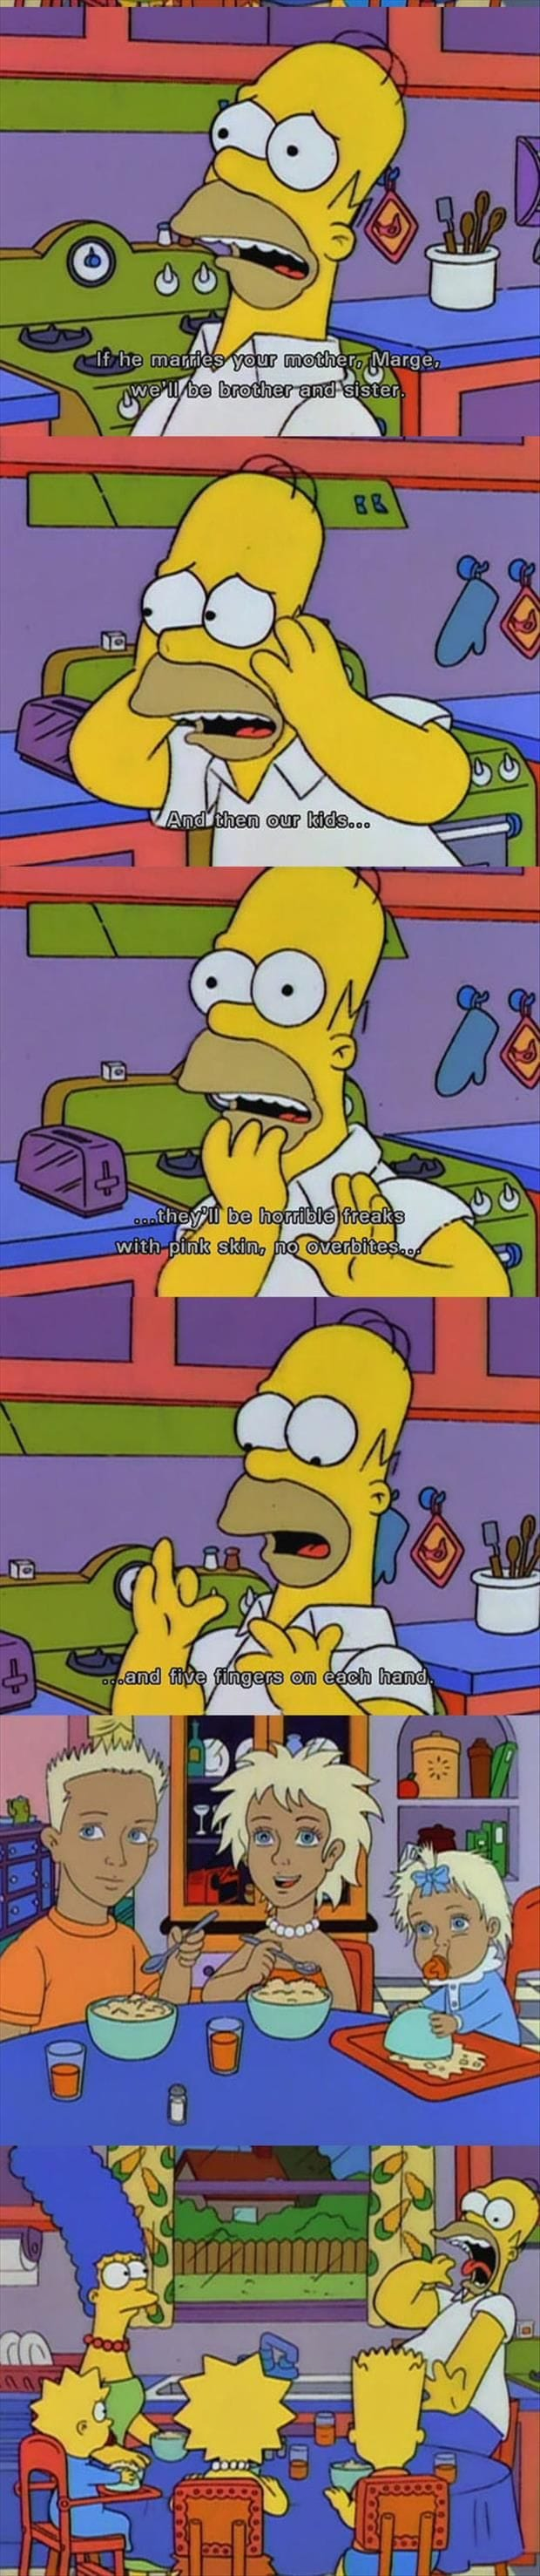 just-worried-about-our-kids-marge